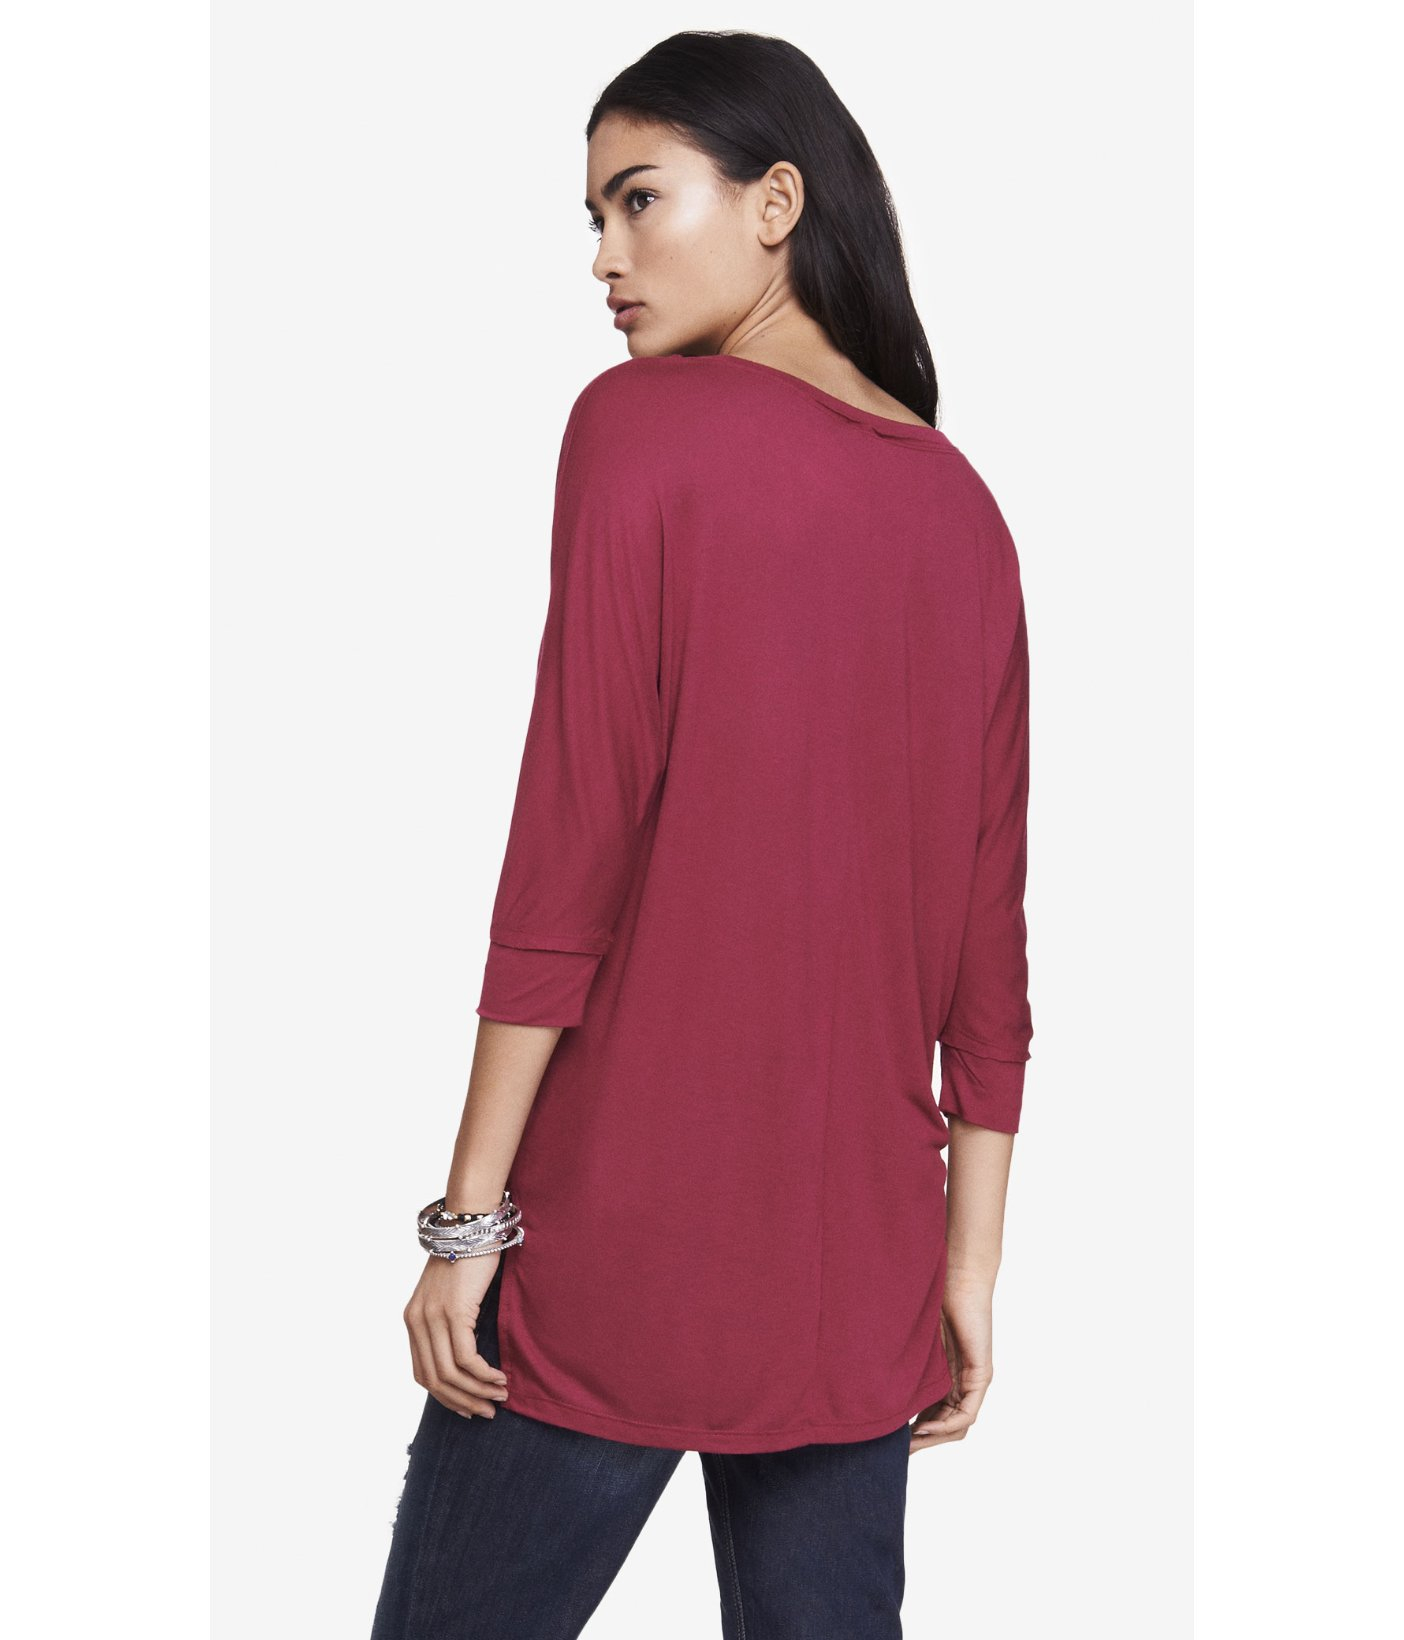 Shop eBay for great deals on Plaid Dolman Sleeve Tunic Tops for Women. You'll find new or used products in Plaid Dolman Sleeve Tunic Tops for Women on eBay. Free shipping on selected items.